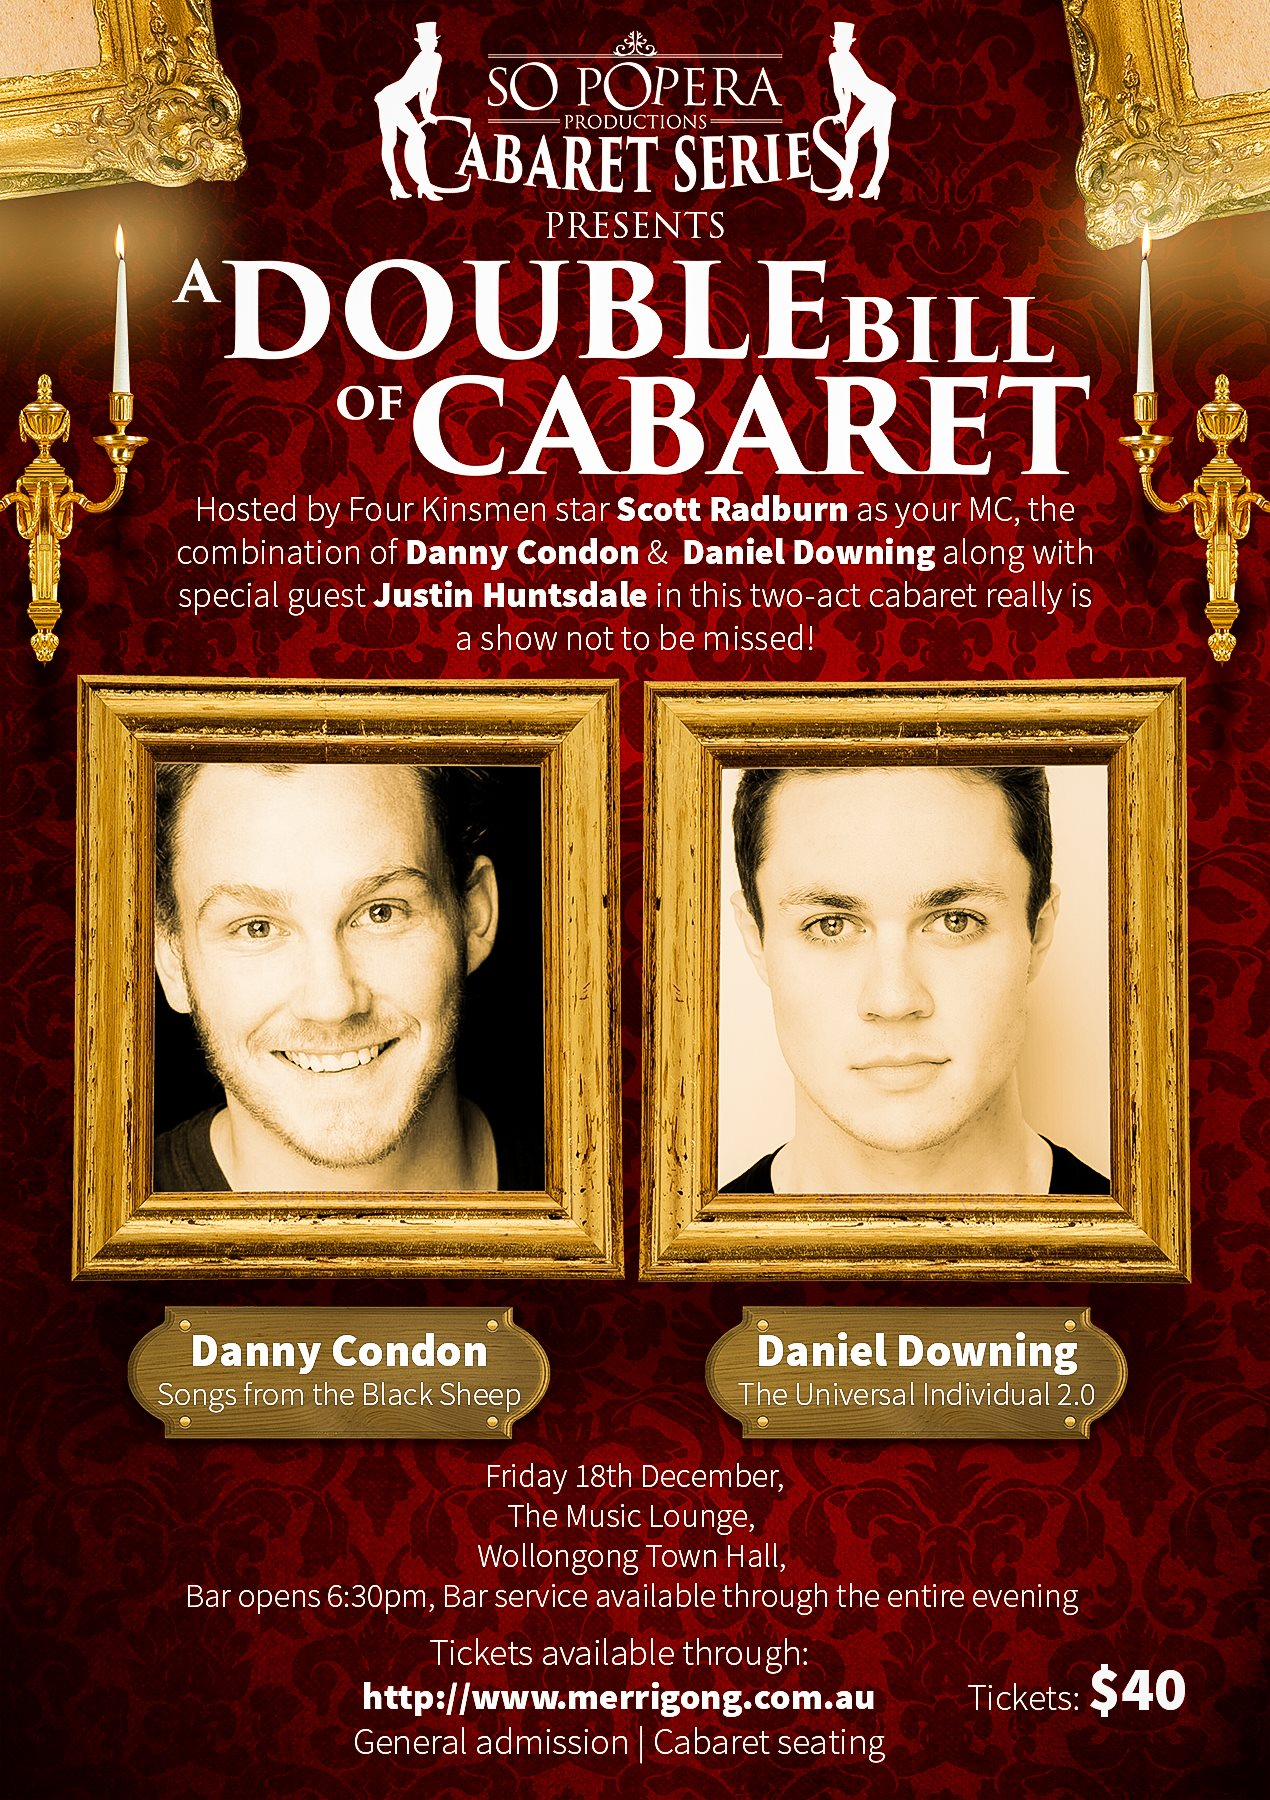 A Double Bill of Cabaret – Daniel Downing & Danny Condon